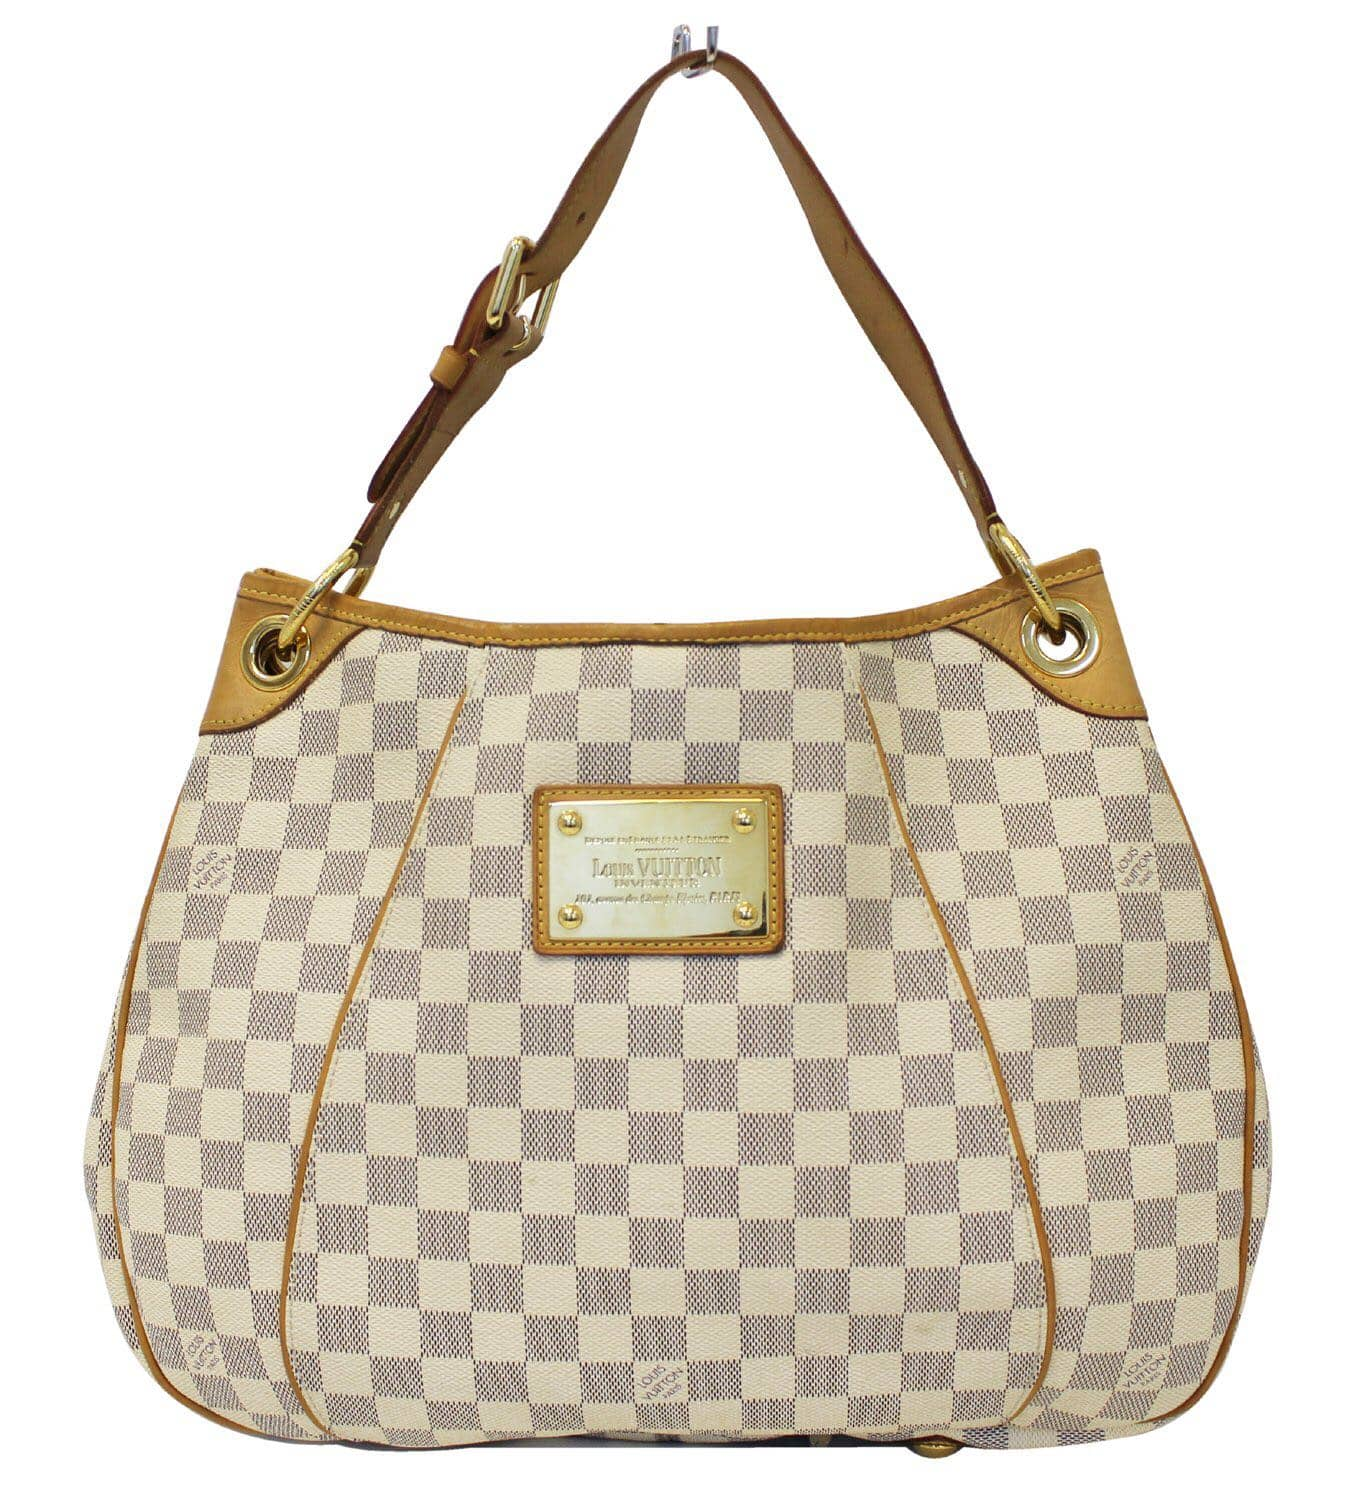 9aee95bb7 Dream Bag for Rent Louis Vuitton bag | Dream Bag for Rent